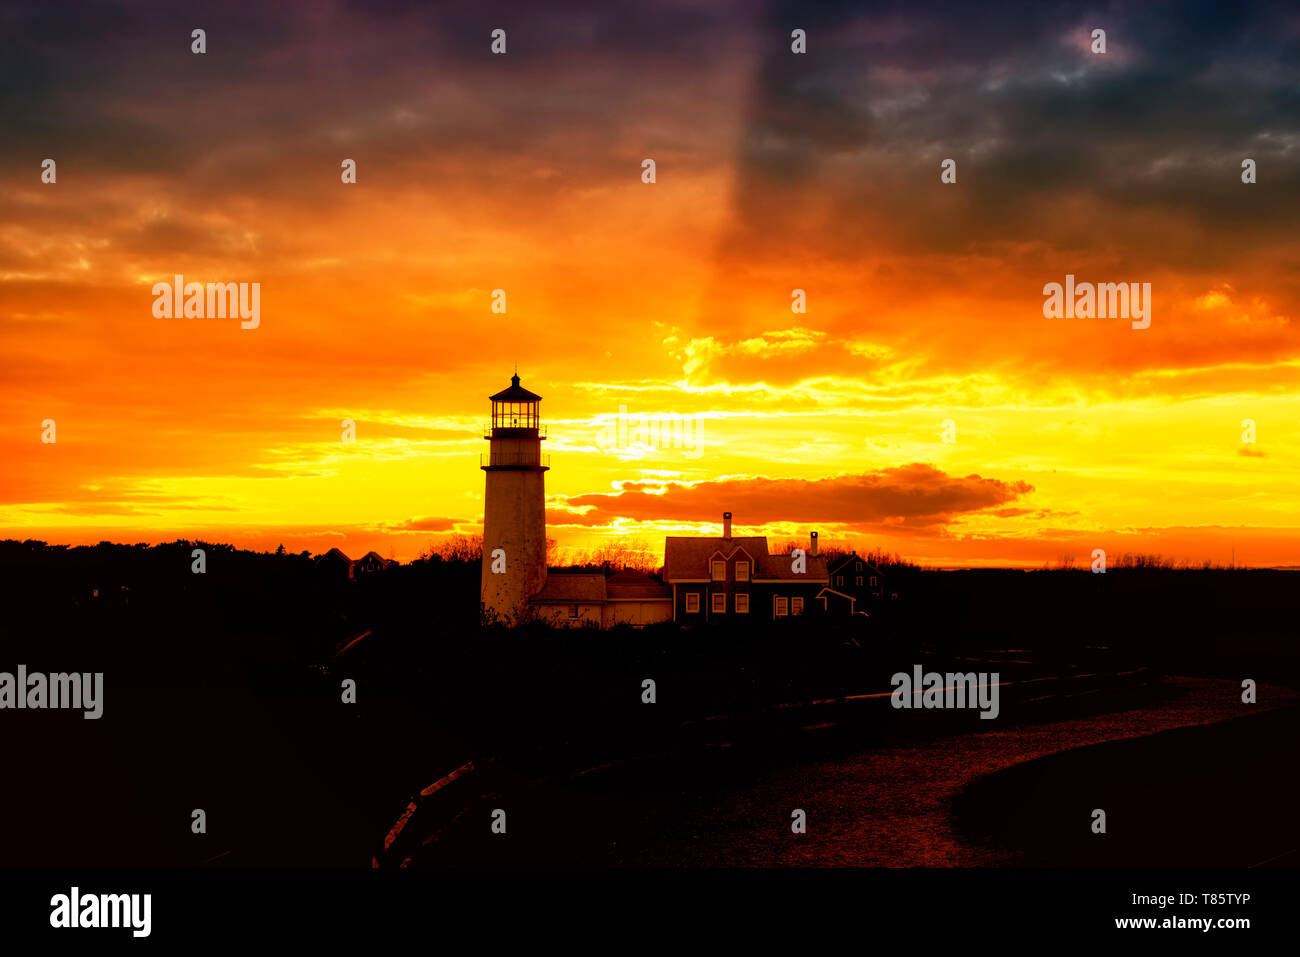 The Highland Lighthouse against a beautiful sunset in North Truro Massachusetts on the Cape Cod National Seashore. - Stock Image